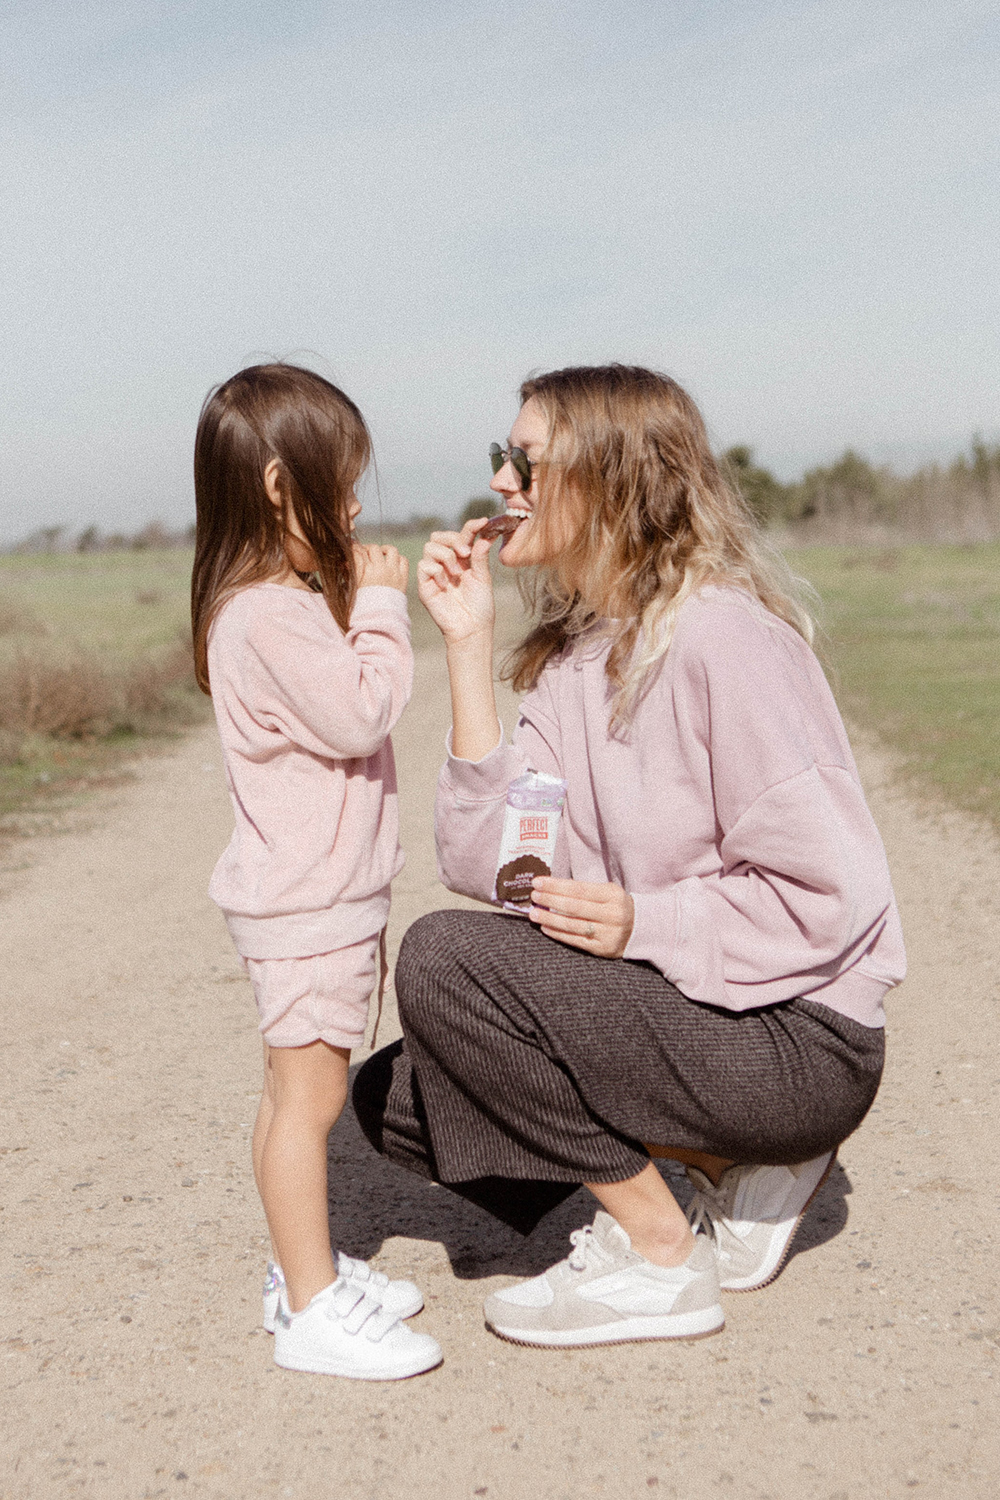 mother and daugther in matching sporty outfits eat healthy snacks